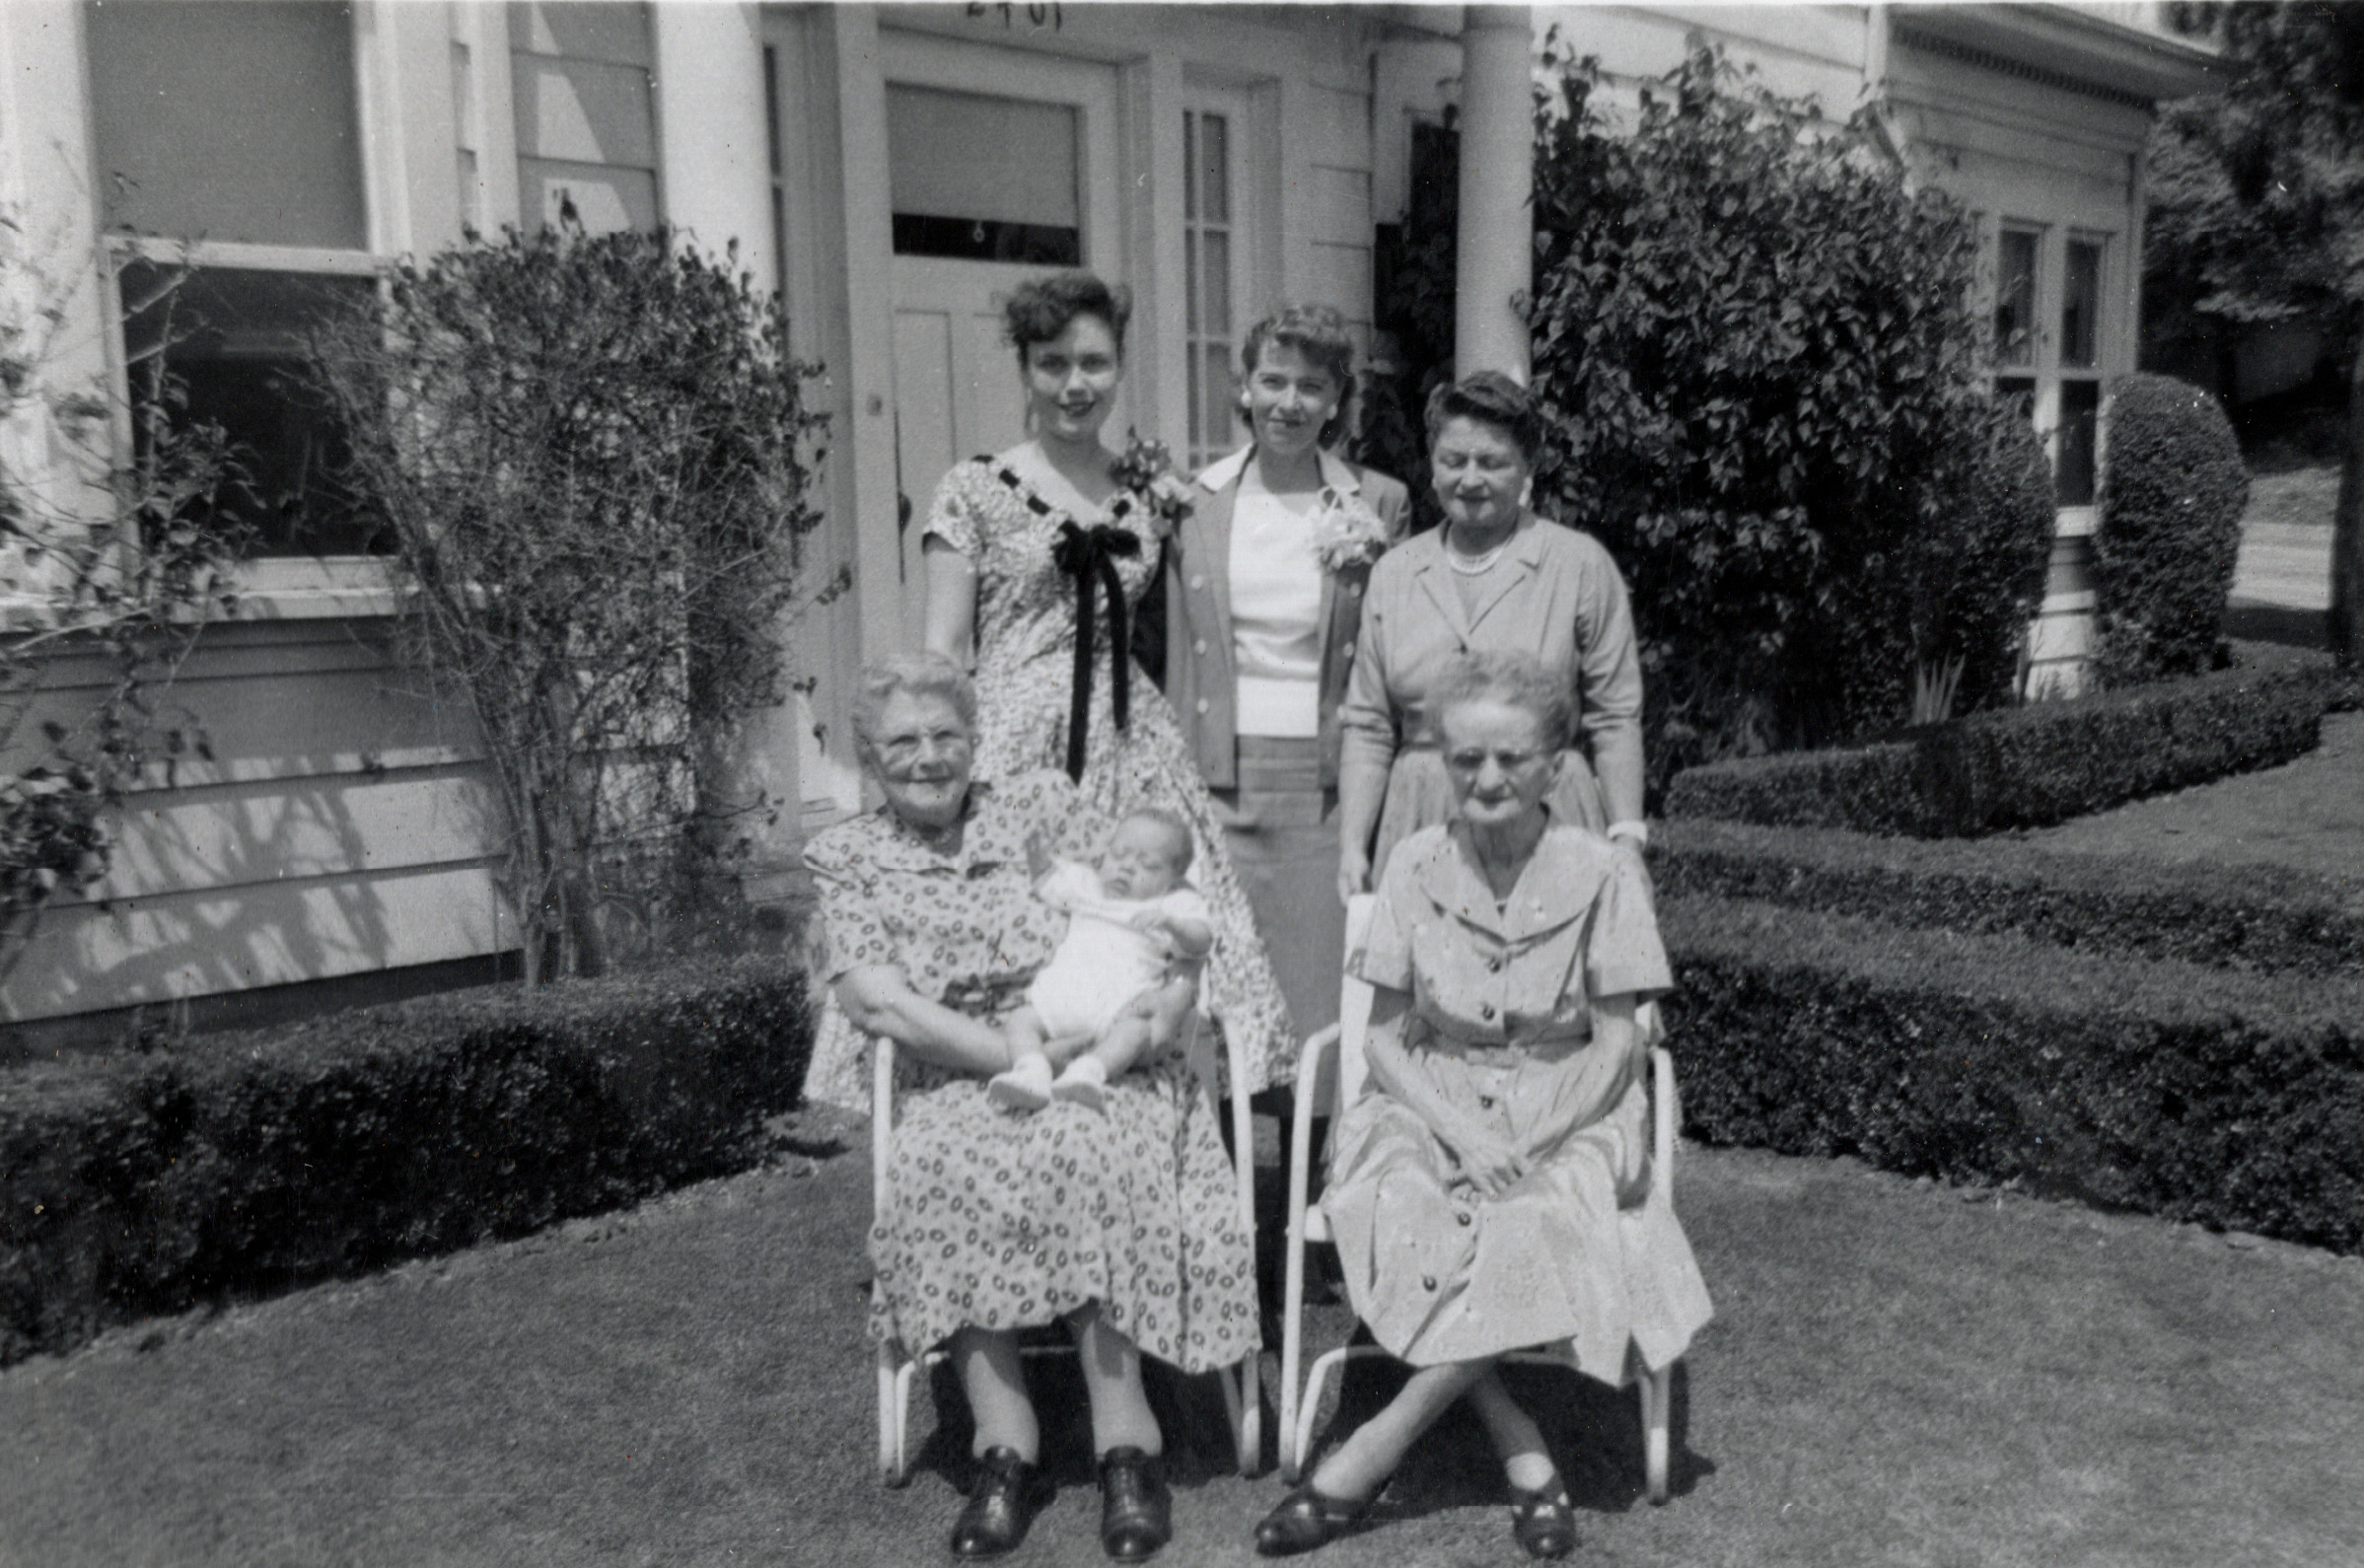 Buddy with 5 Generations of Women